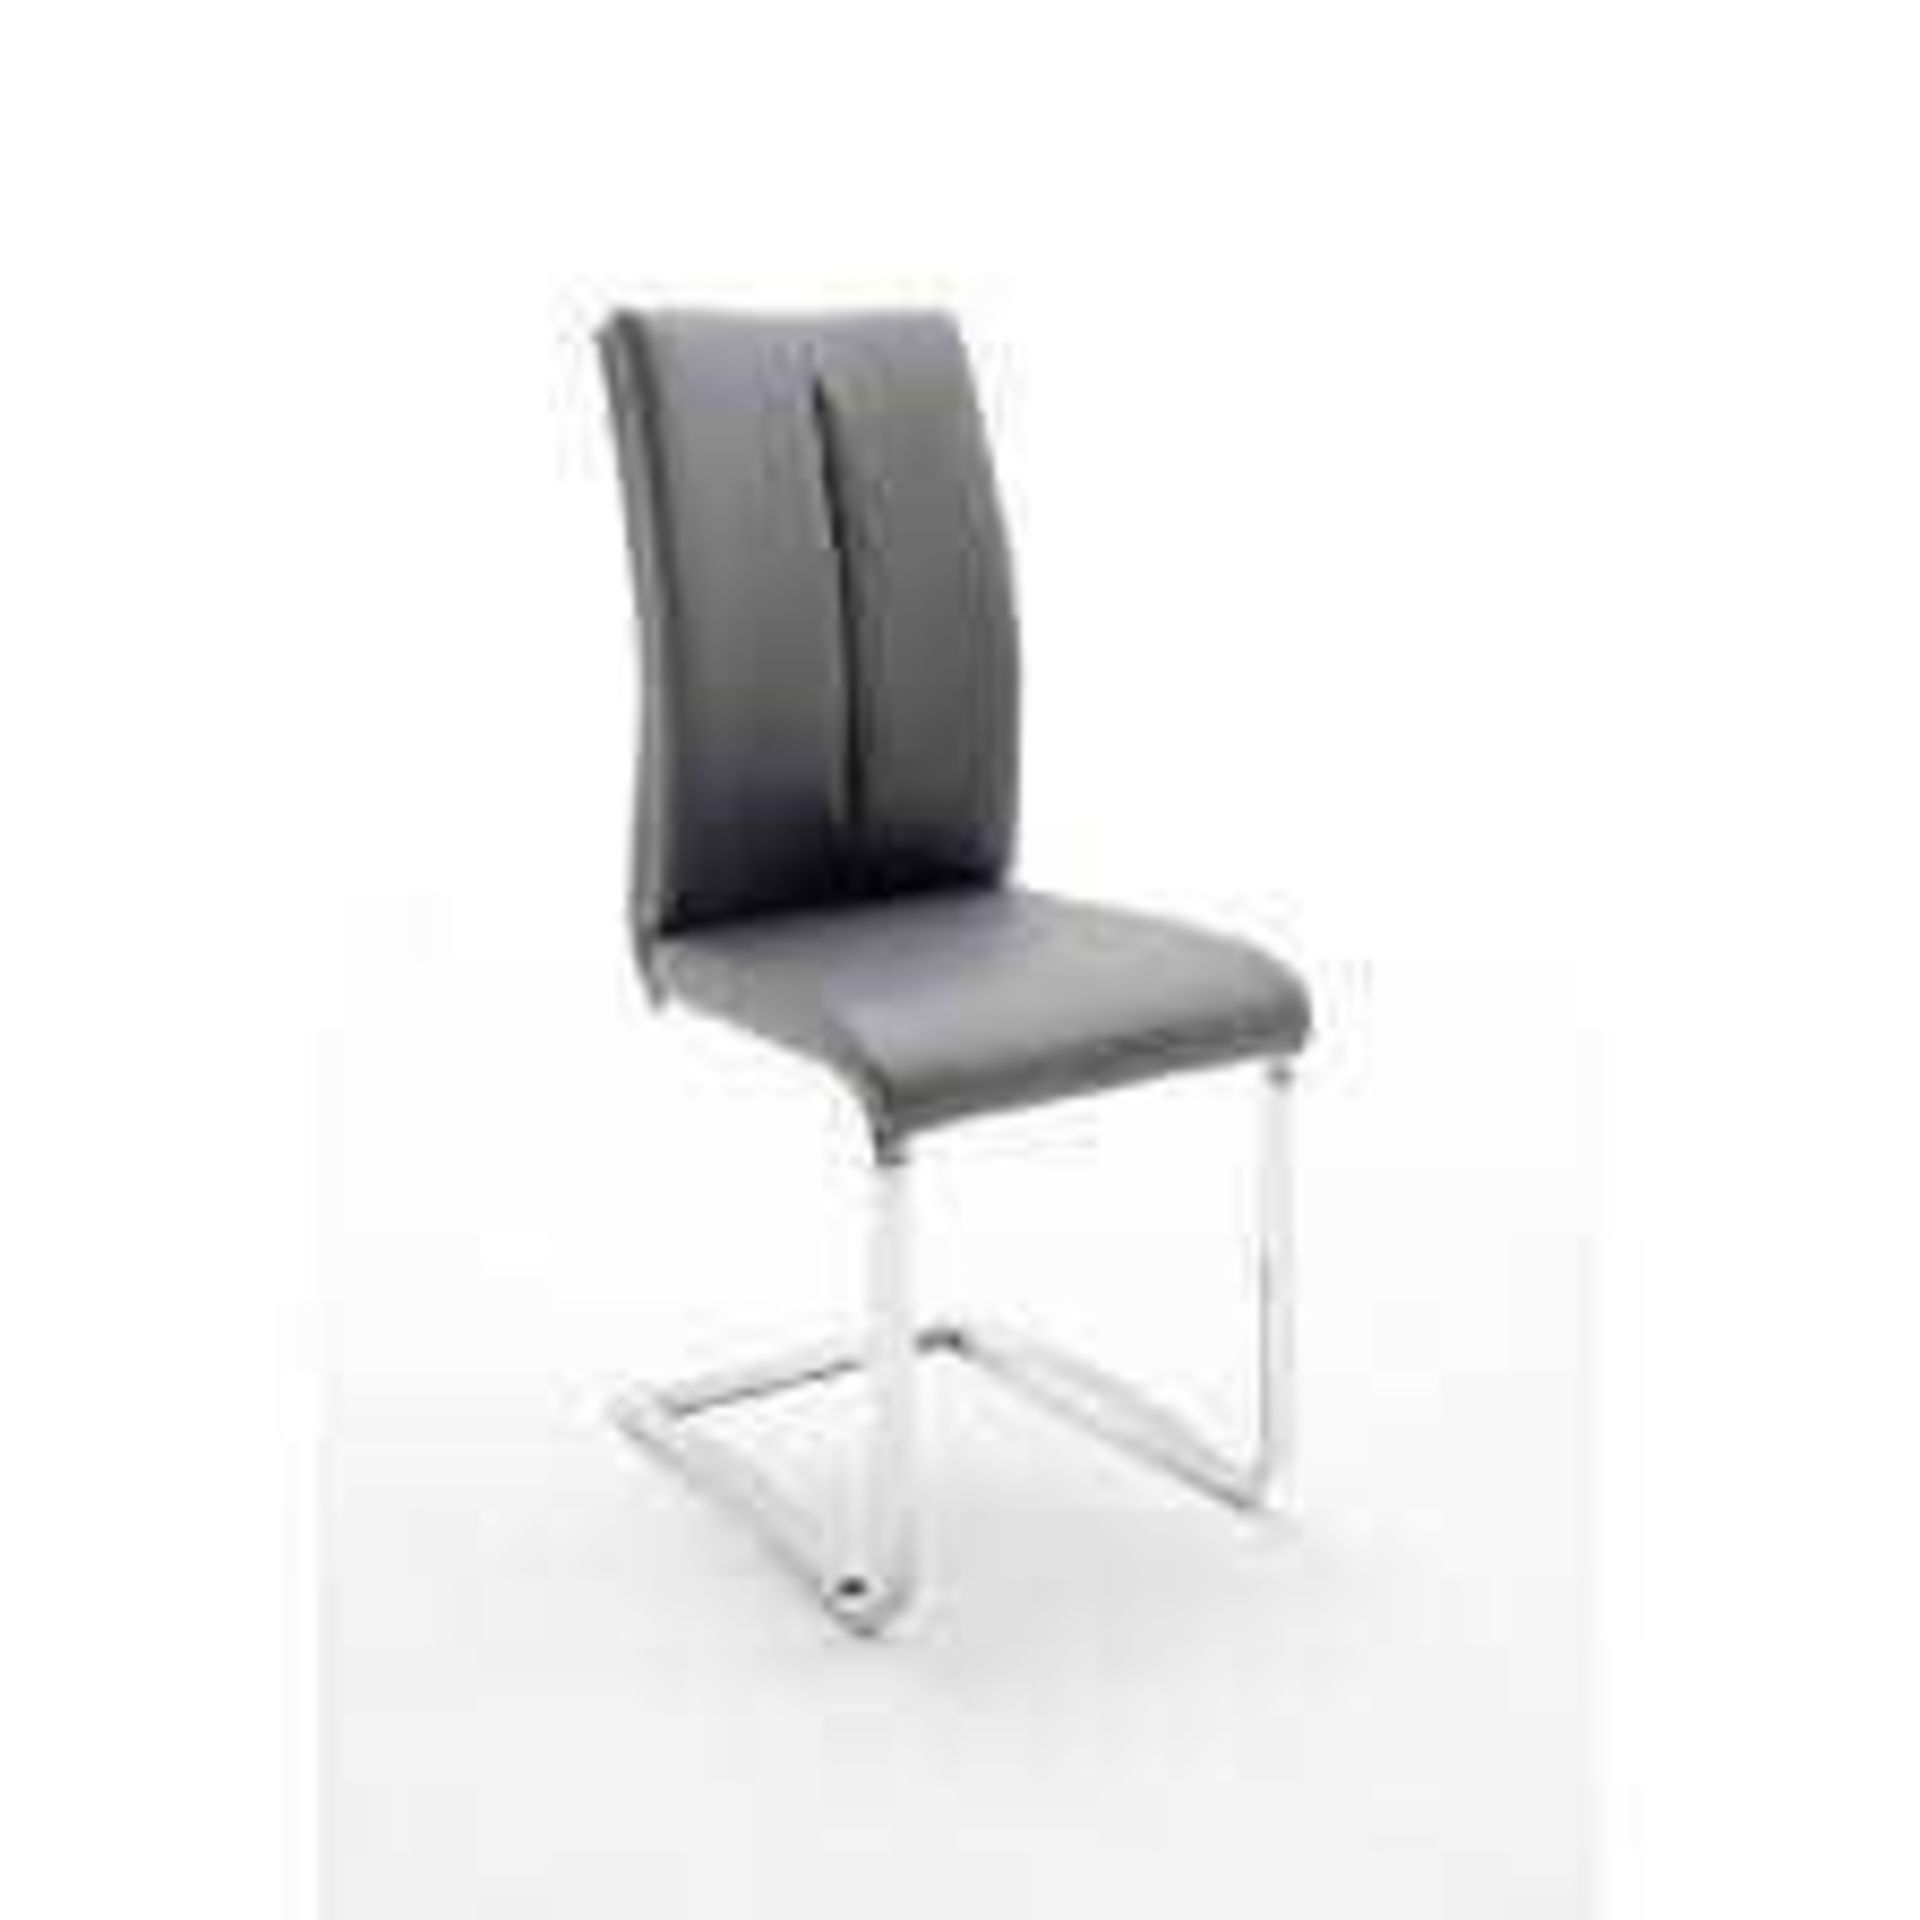 RRP £300 - Boxed 3 'Tavis' Grey Dining Chairs (Appraisals Available On Request) (Pictures For